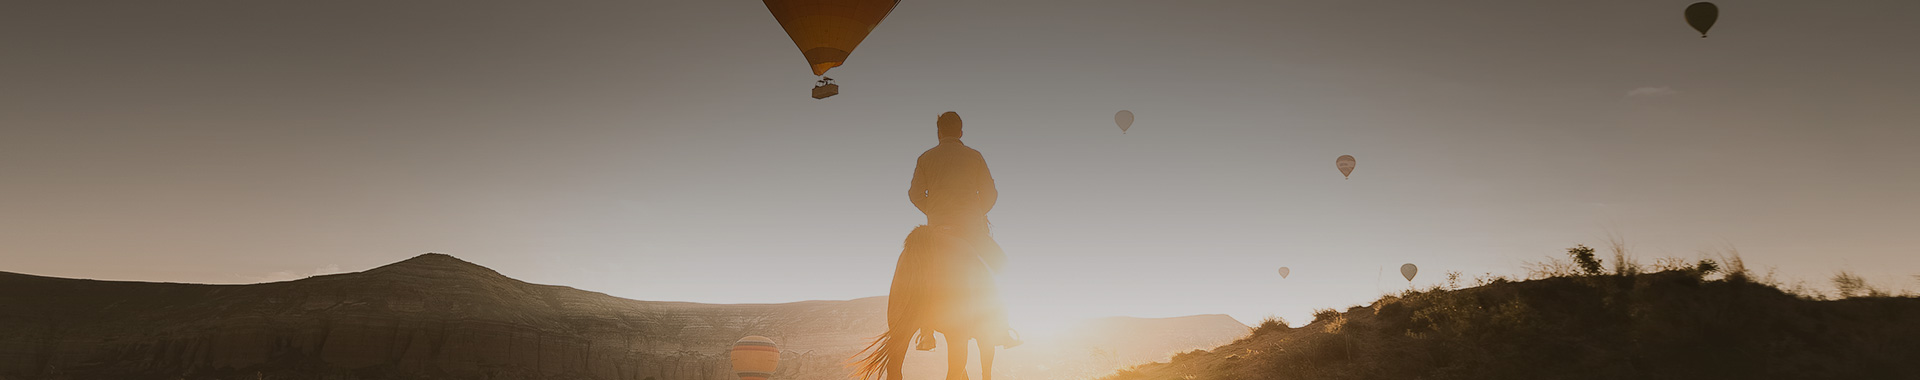 man riding a horse with the sun gleaming in the distance and hot air balloons in the sky